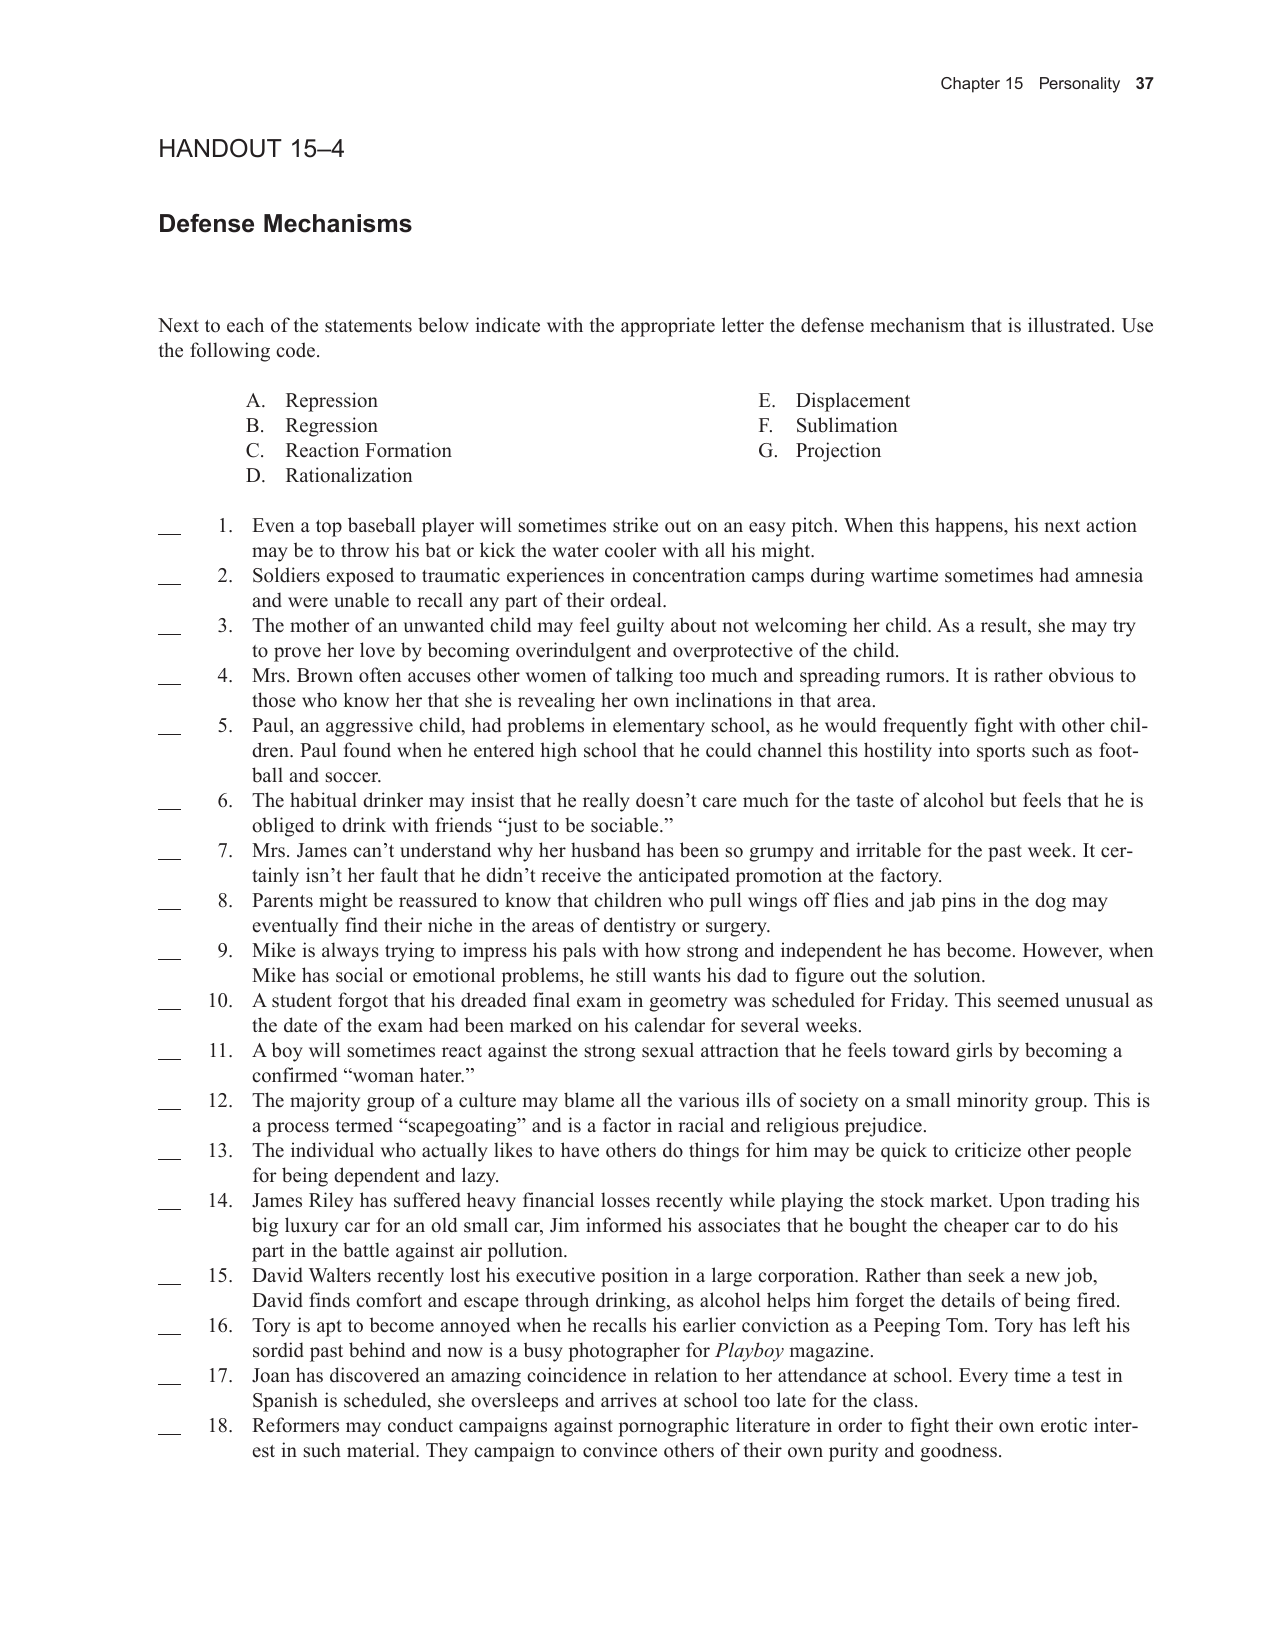 Defense Mechanism Worksheet